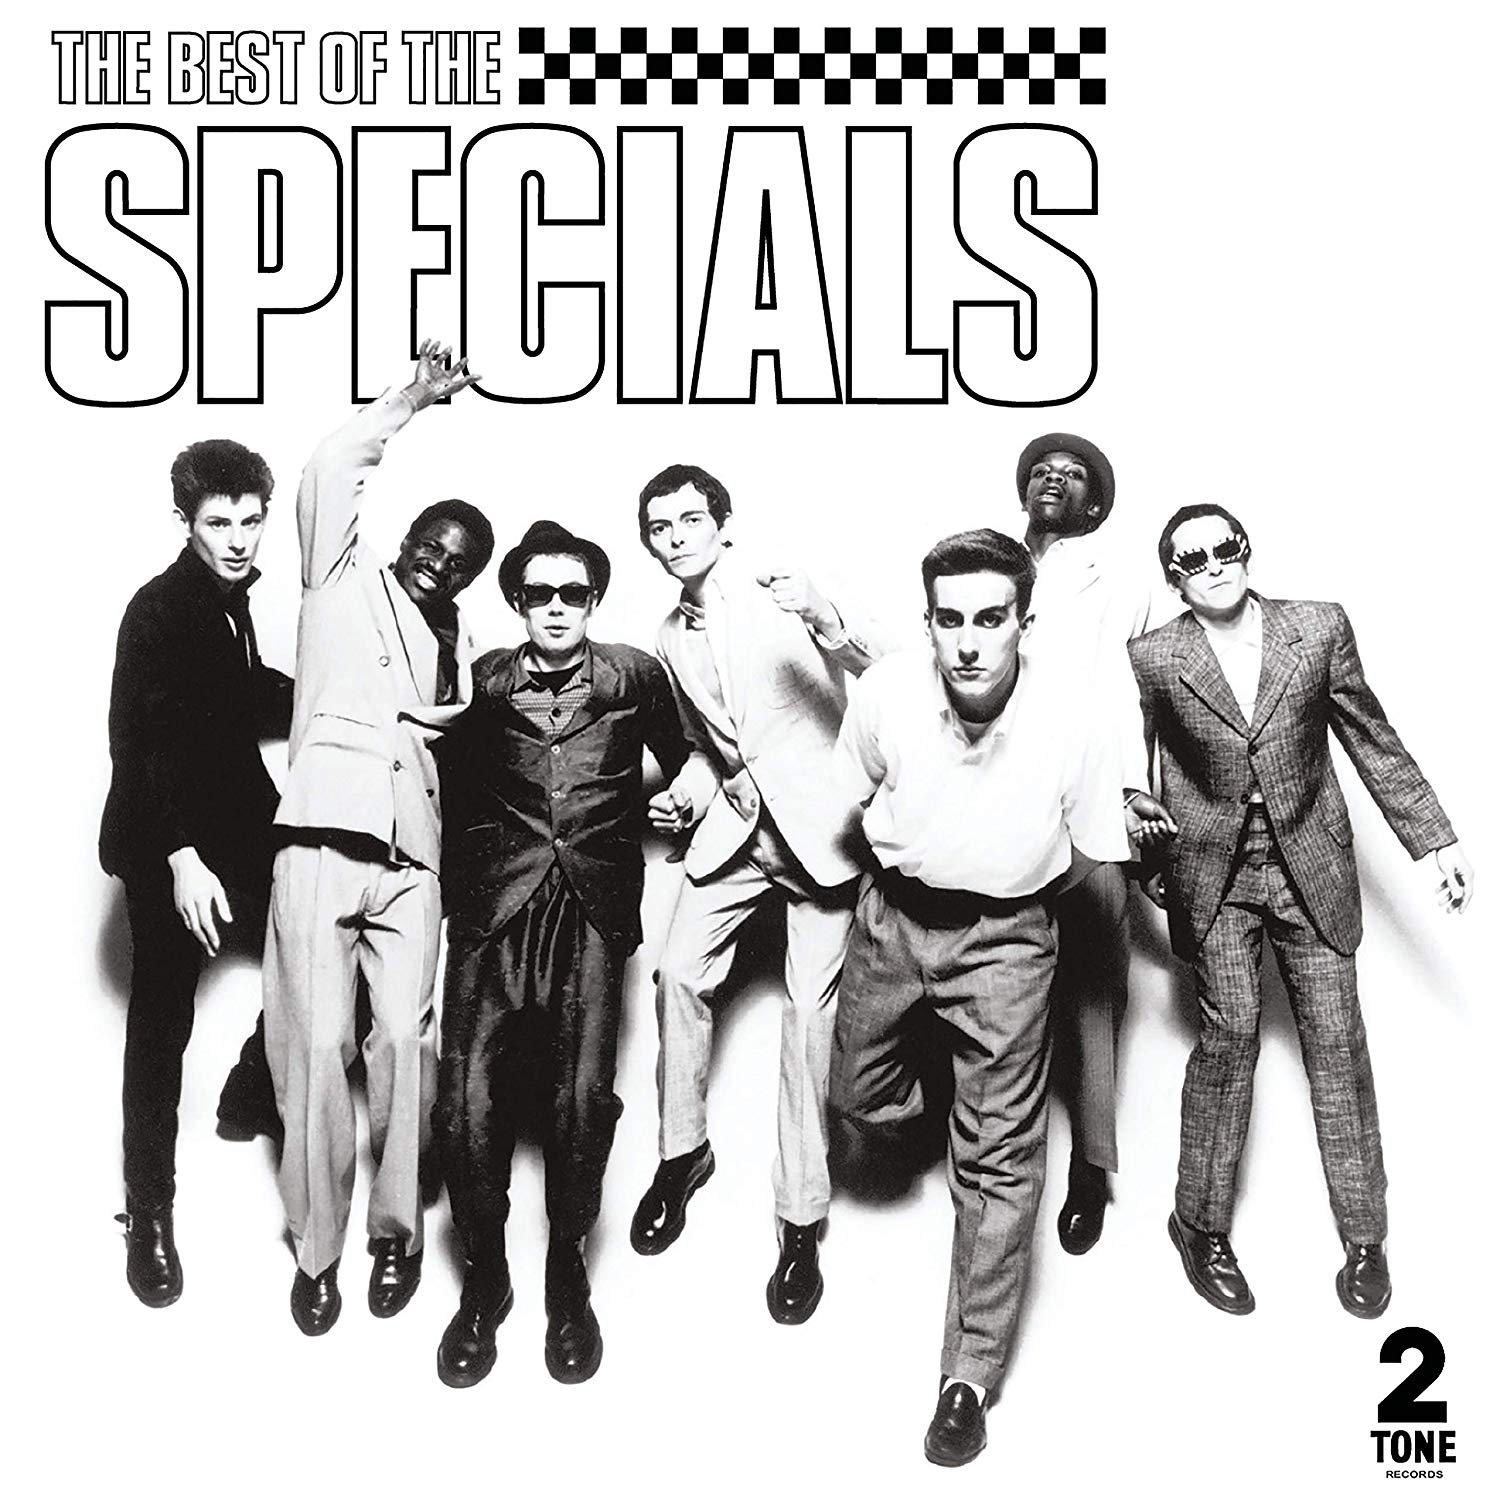 The Specials -The Best Of The Specials